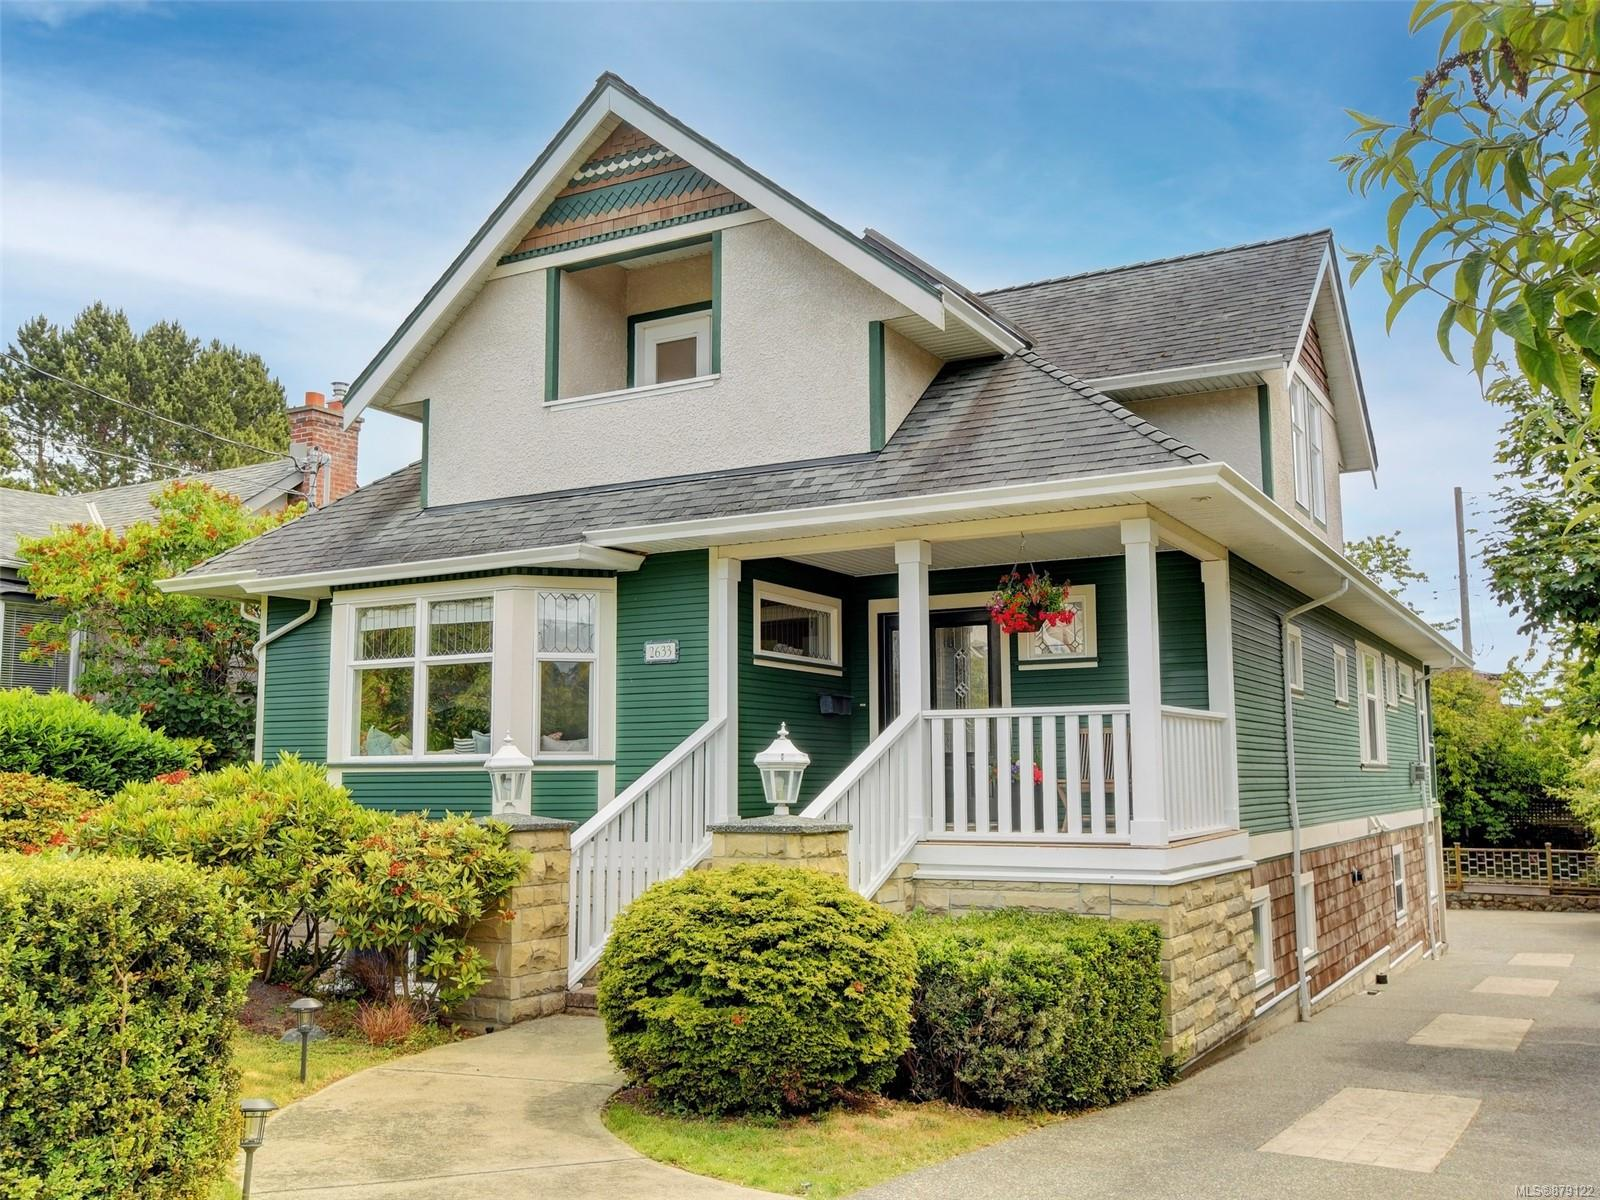 Wonderful family home located just steps to Willows Beach! This 2001 build character home offers 4500+ sq. ft, 6 bedrooms and 5 bathrooms. Oak floors, high ceilings, crown molding character style doors and windows. Fabulous kitchen, lots of cabinets, granite countertops, eating nook and family room with fire place. Living room with bay windows and FP, formal dining room, and office. Upstairs are three superb bedrooms including master with full ensuite and deck with views. The lower level offers a large rec room, bedroom and a fantastic 2 bedroom suite with laundry. Attached double garage and a great yard. Best of all is its great location, just steps to schools(GNS and Willows) , Uplands Park, Estevan shopping, and best of all Willows Beach. This really is a special home located in a prime location